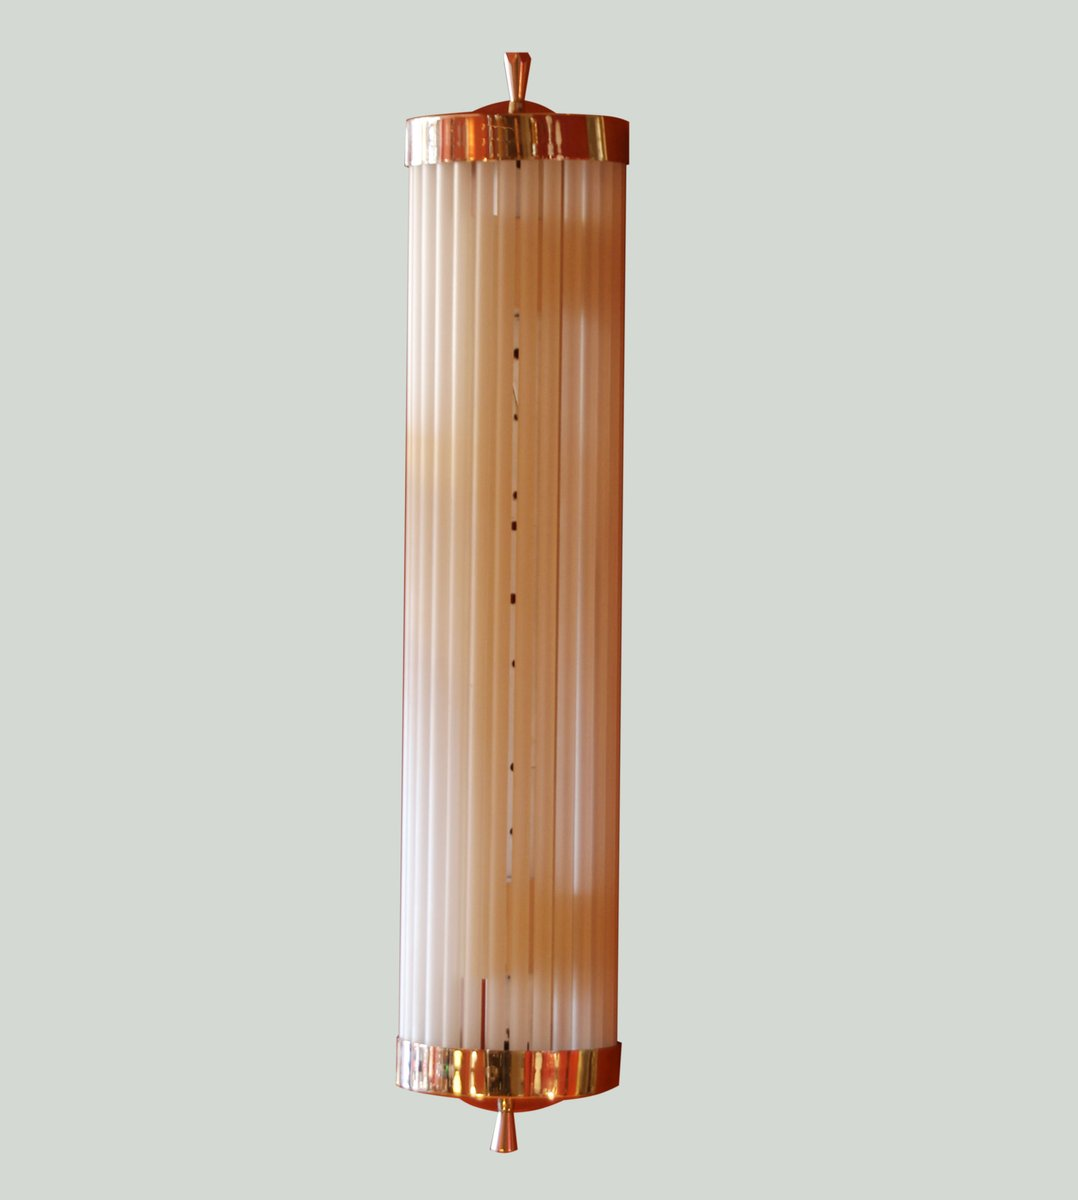 Vintage french long cinema wall light 1930s for sale at pamono vintage french long cinema wall light 1930s aloadofball Image collections